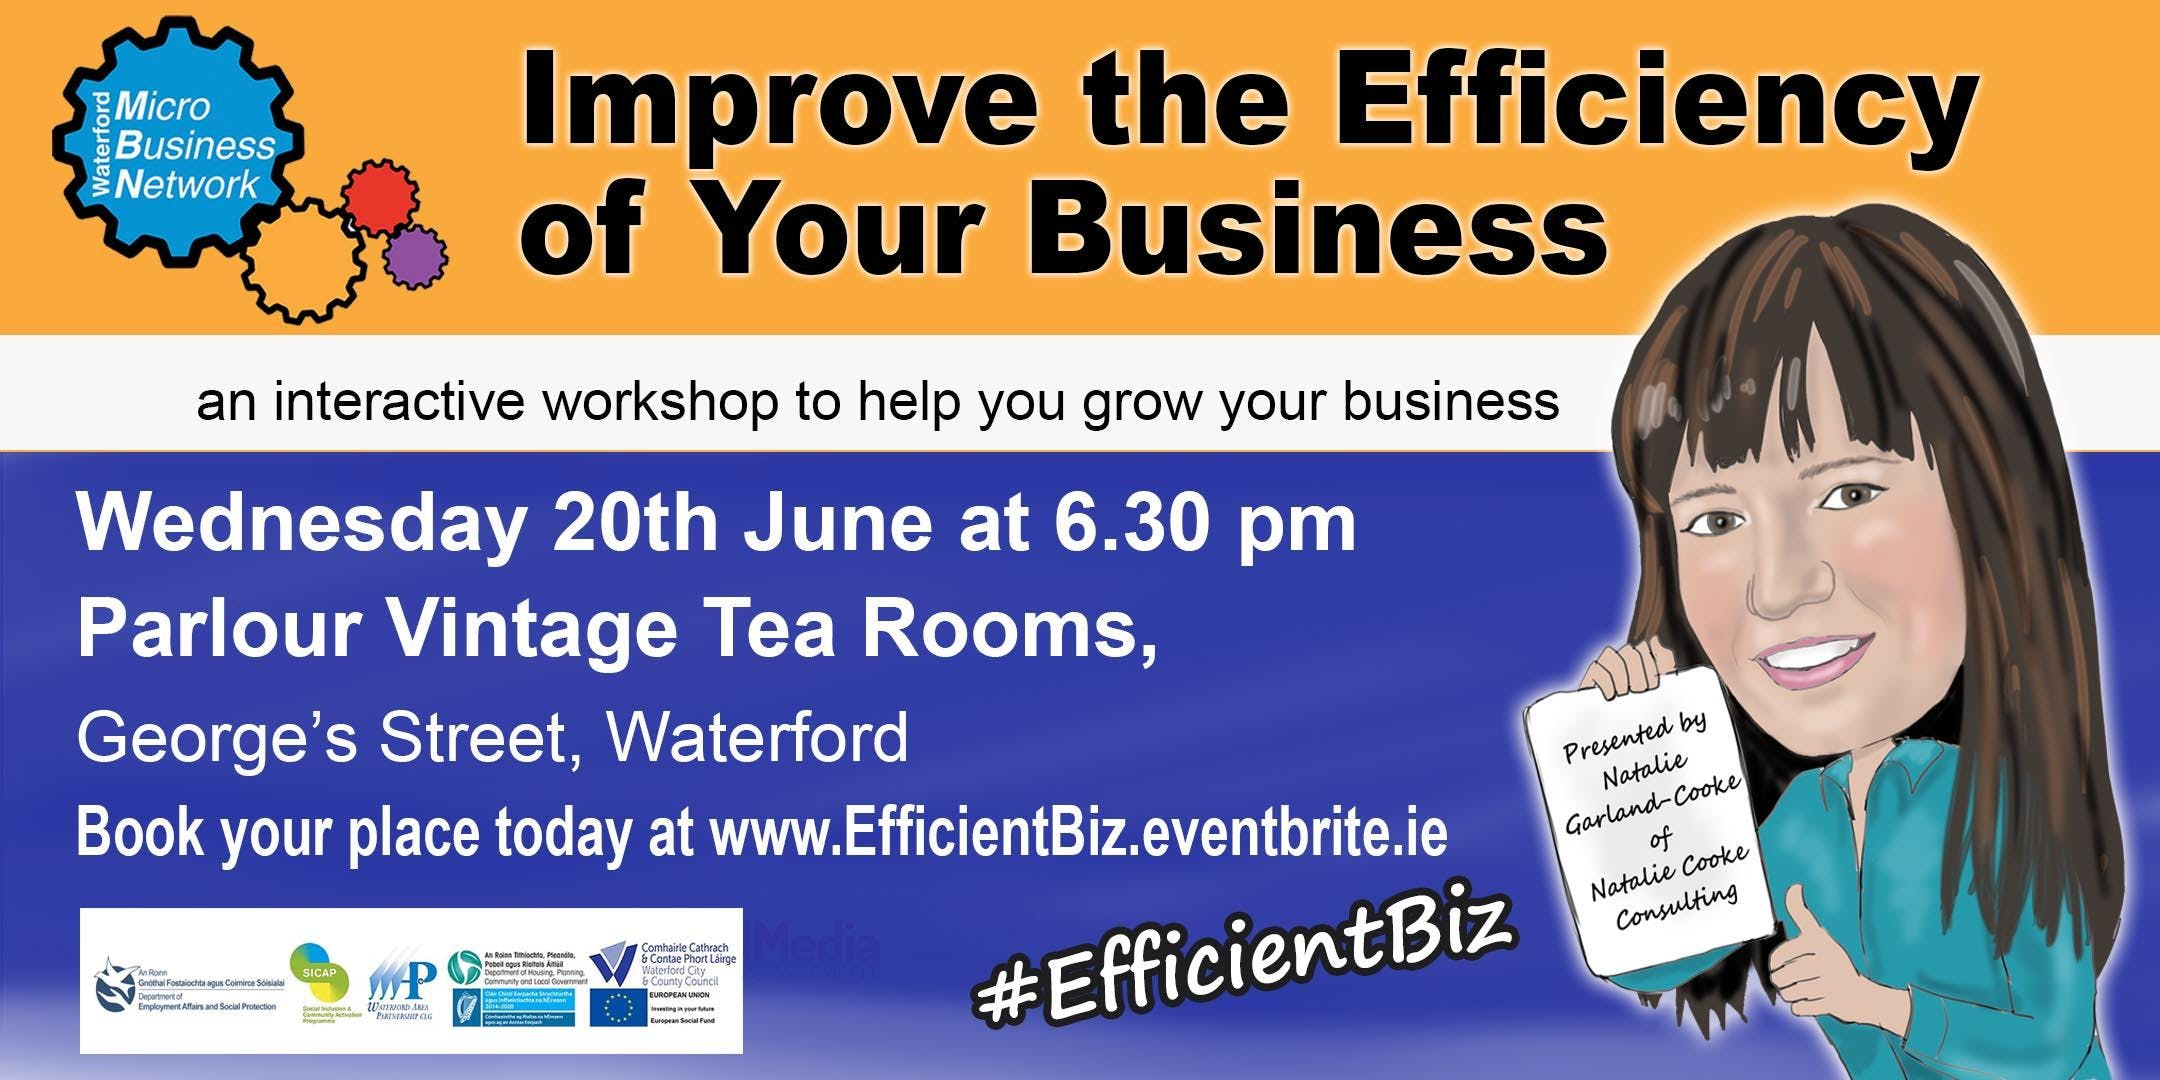 Improve the Efficiency of Your Business